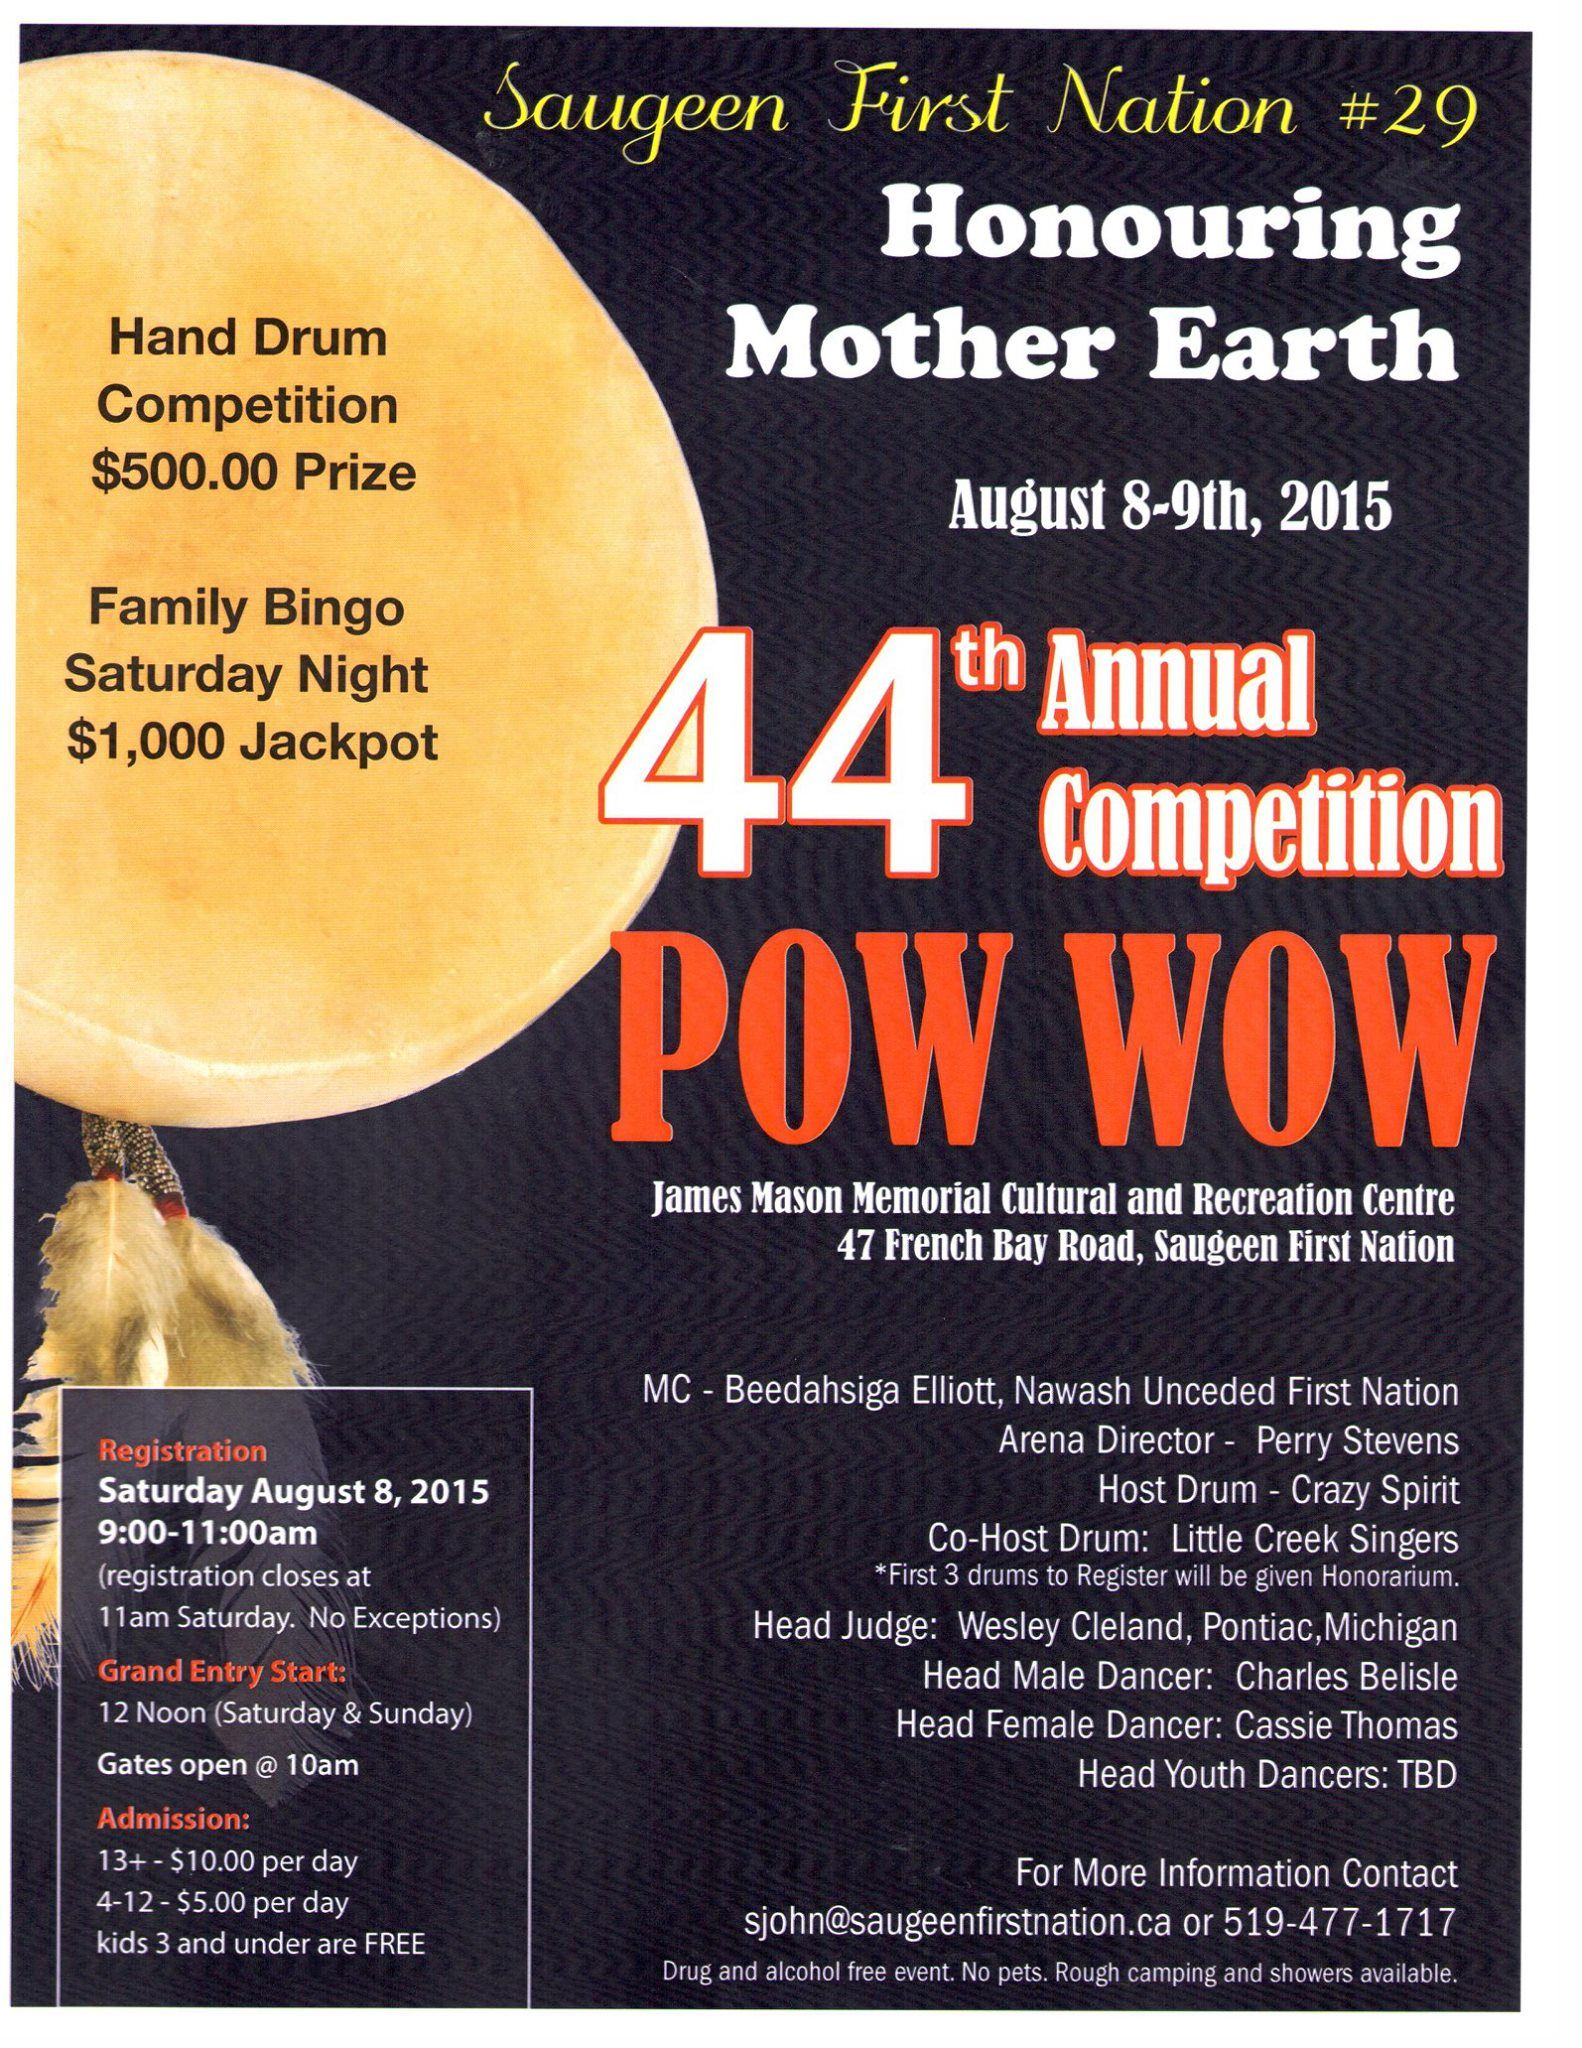 Saugeen-First-Nation-Pow-Wow-August-8-9-2015